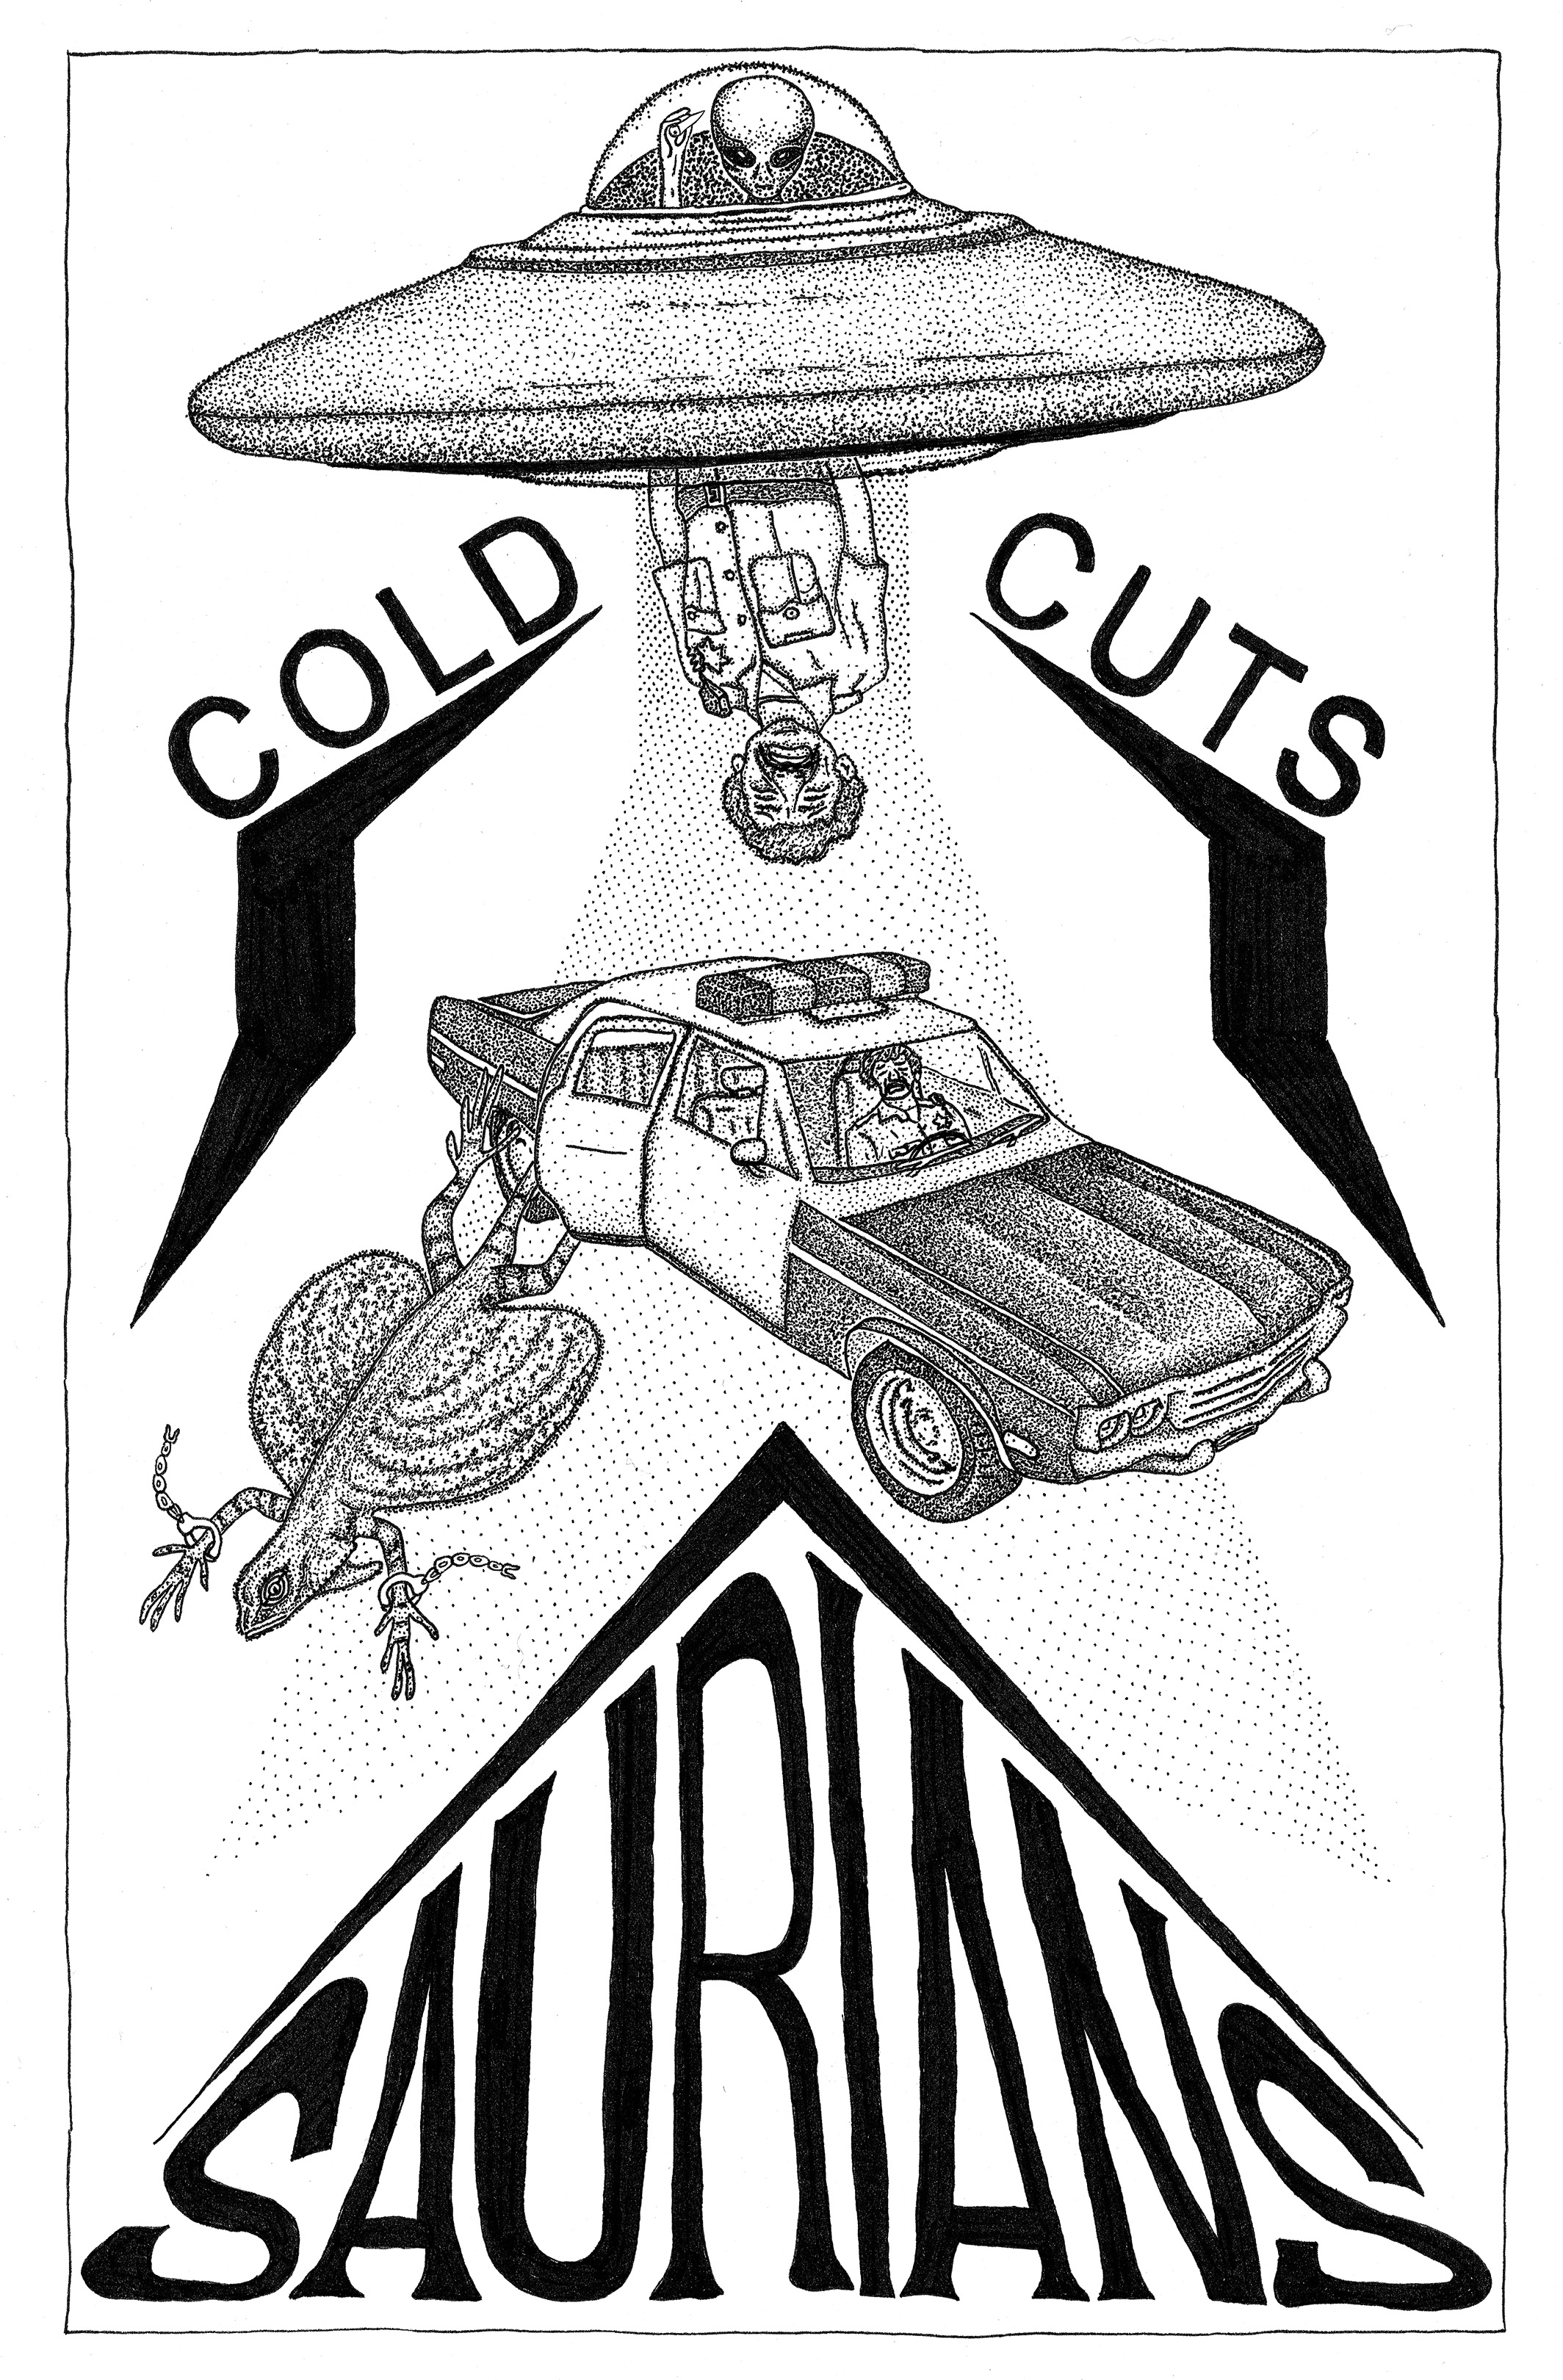 Saurians Cold Cuts Demo Cover Art Small.jpg